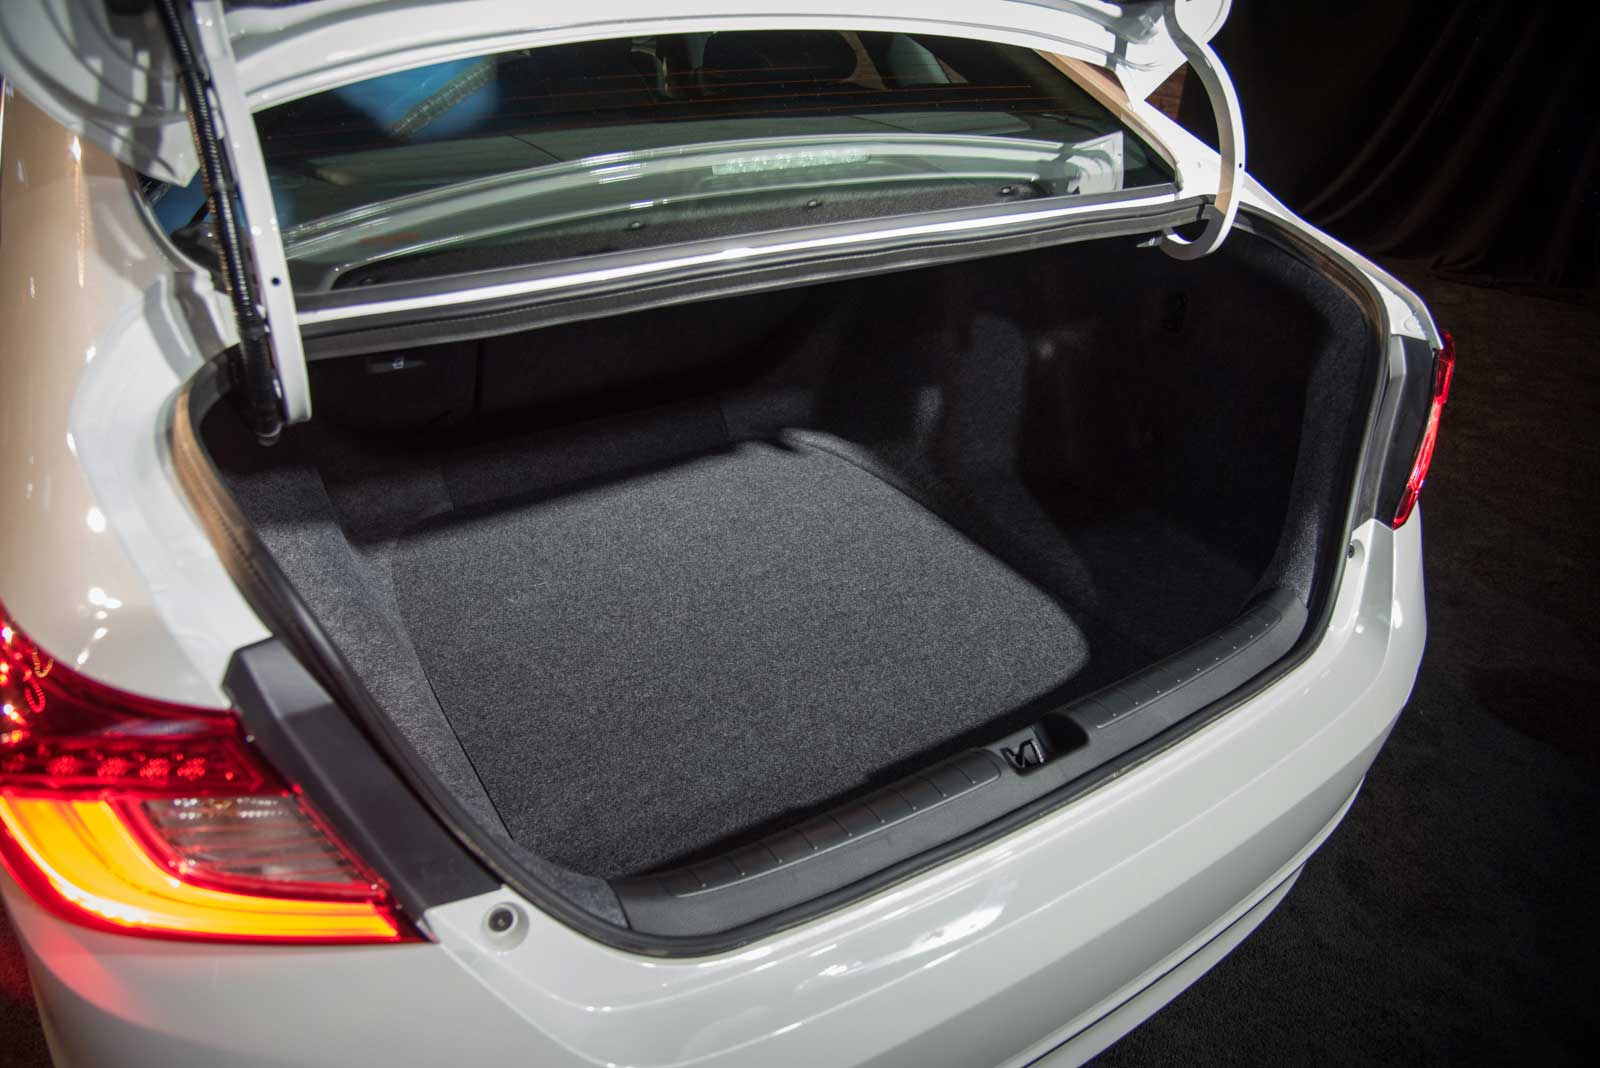 2018 honda accord trunk